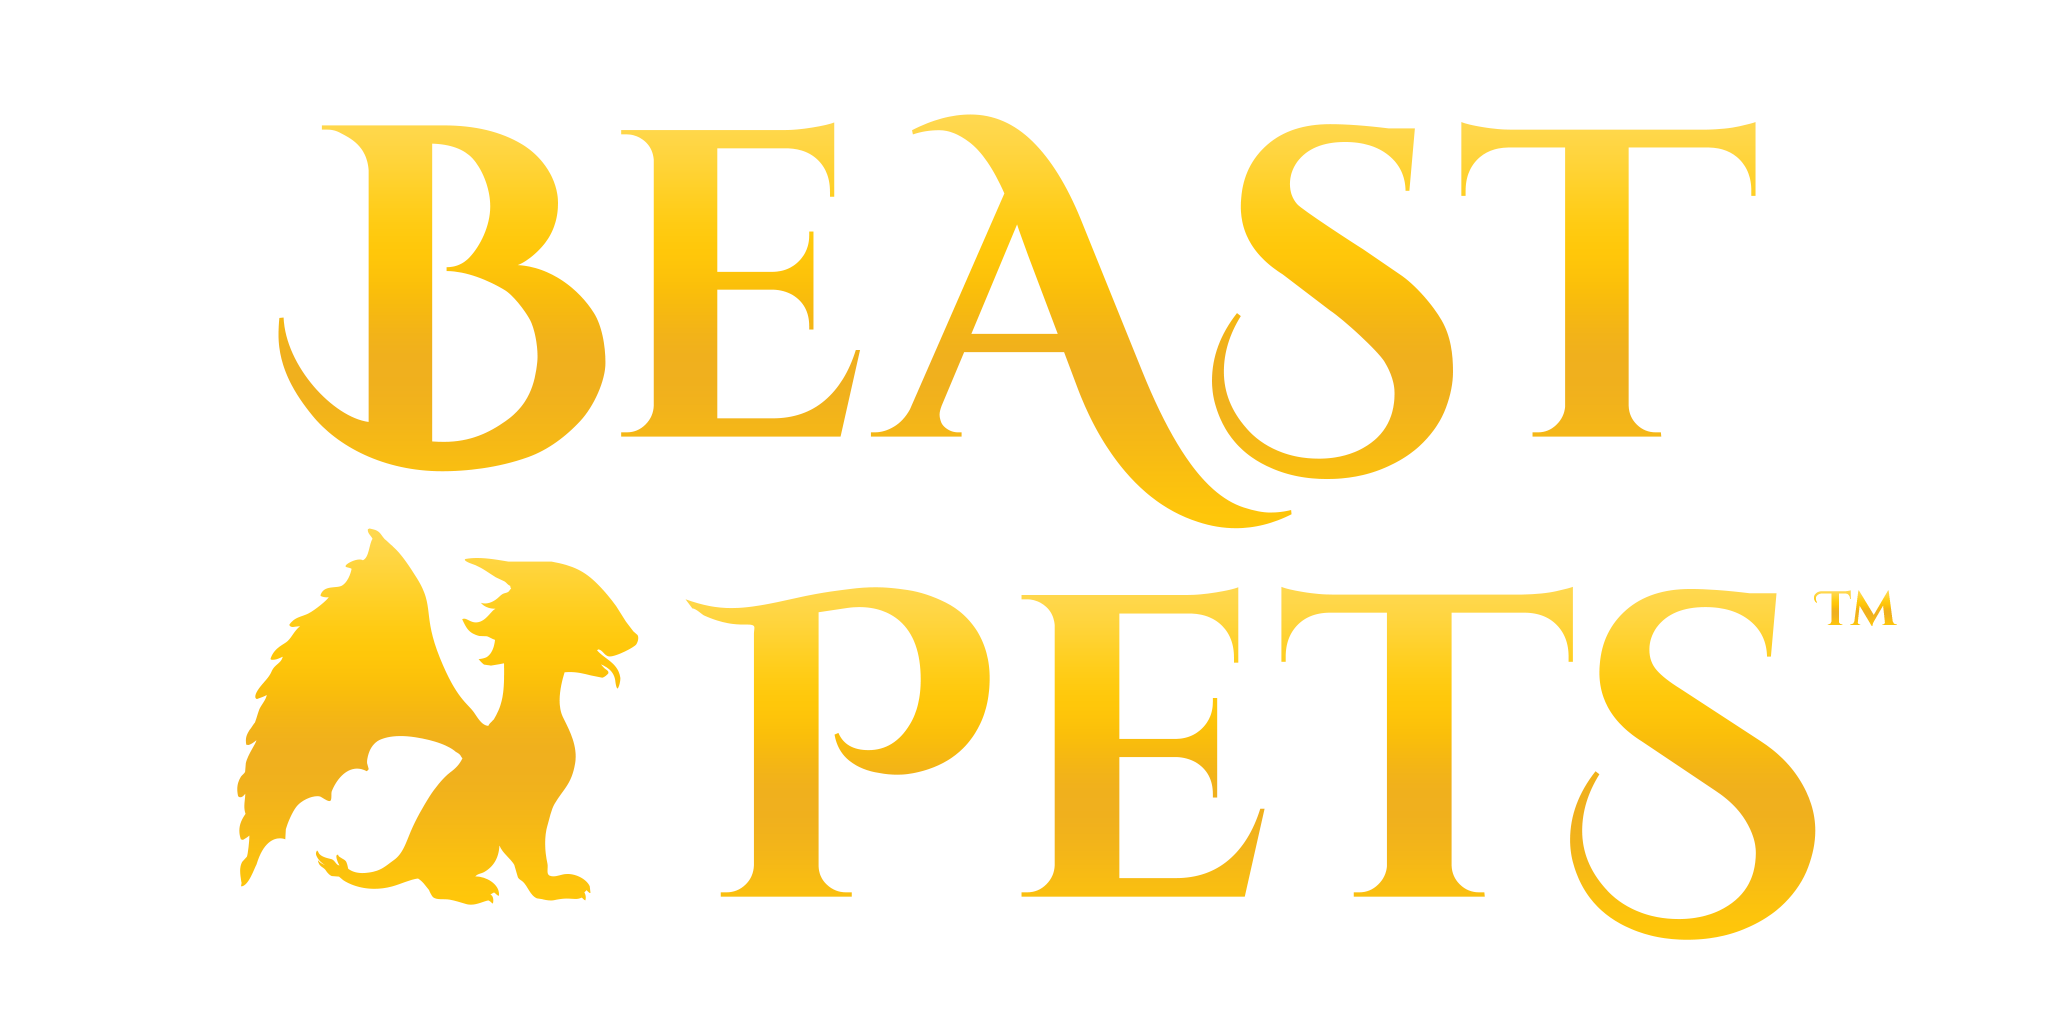 beastpets_logo_style2_transparent.png